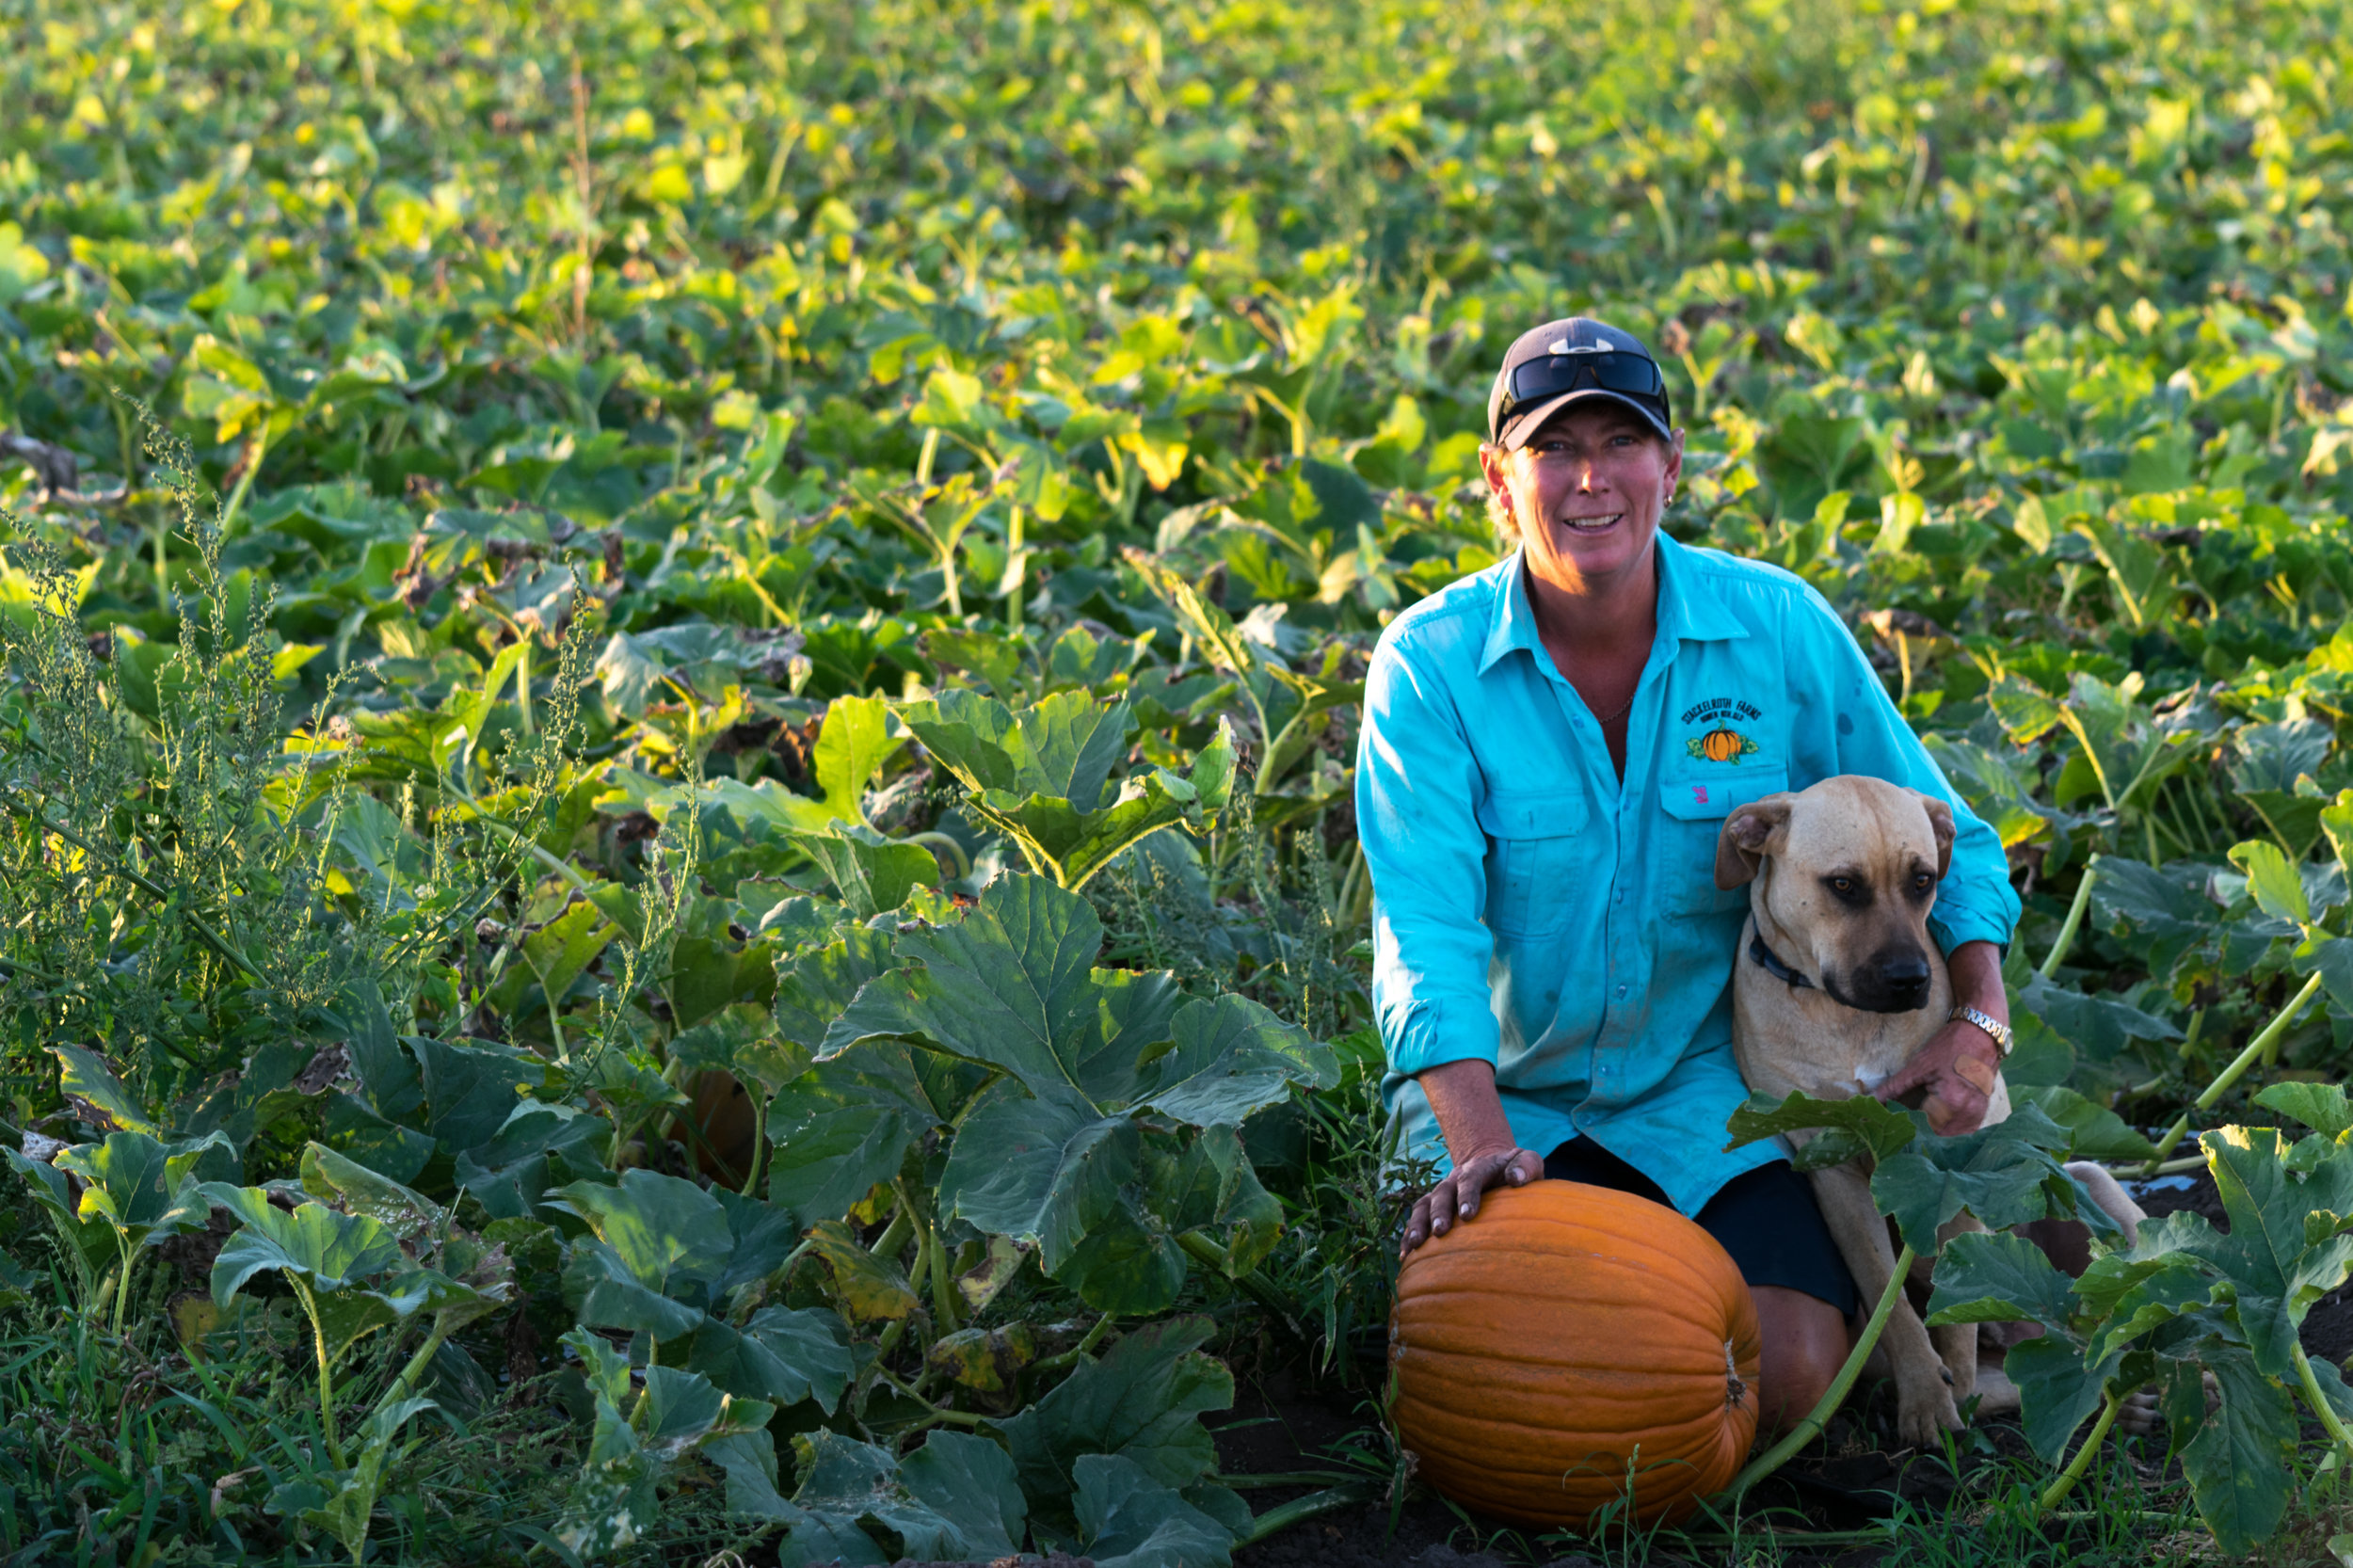 Belinda with her dog, Stackelroth Farms, image courtesy Shannon Kirk of De Lacy Kirk Photography.